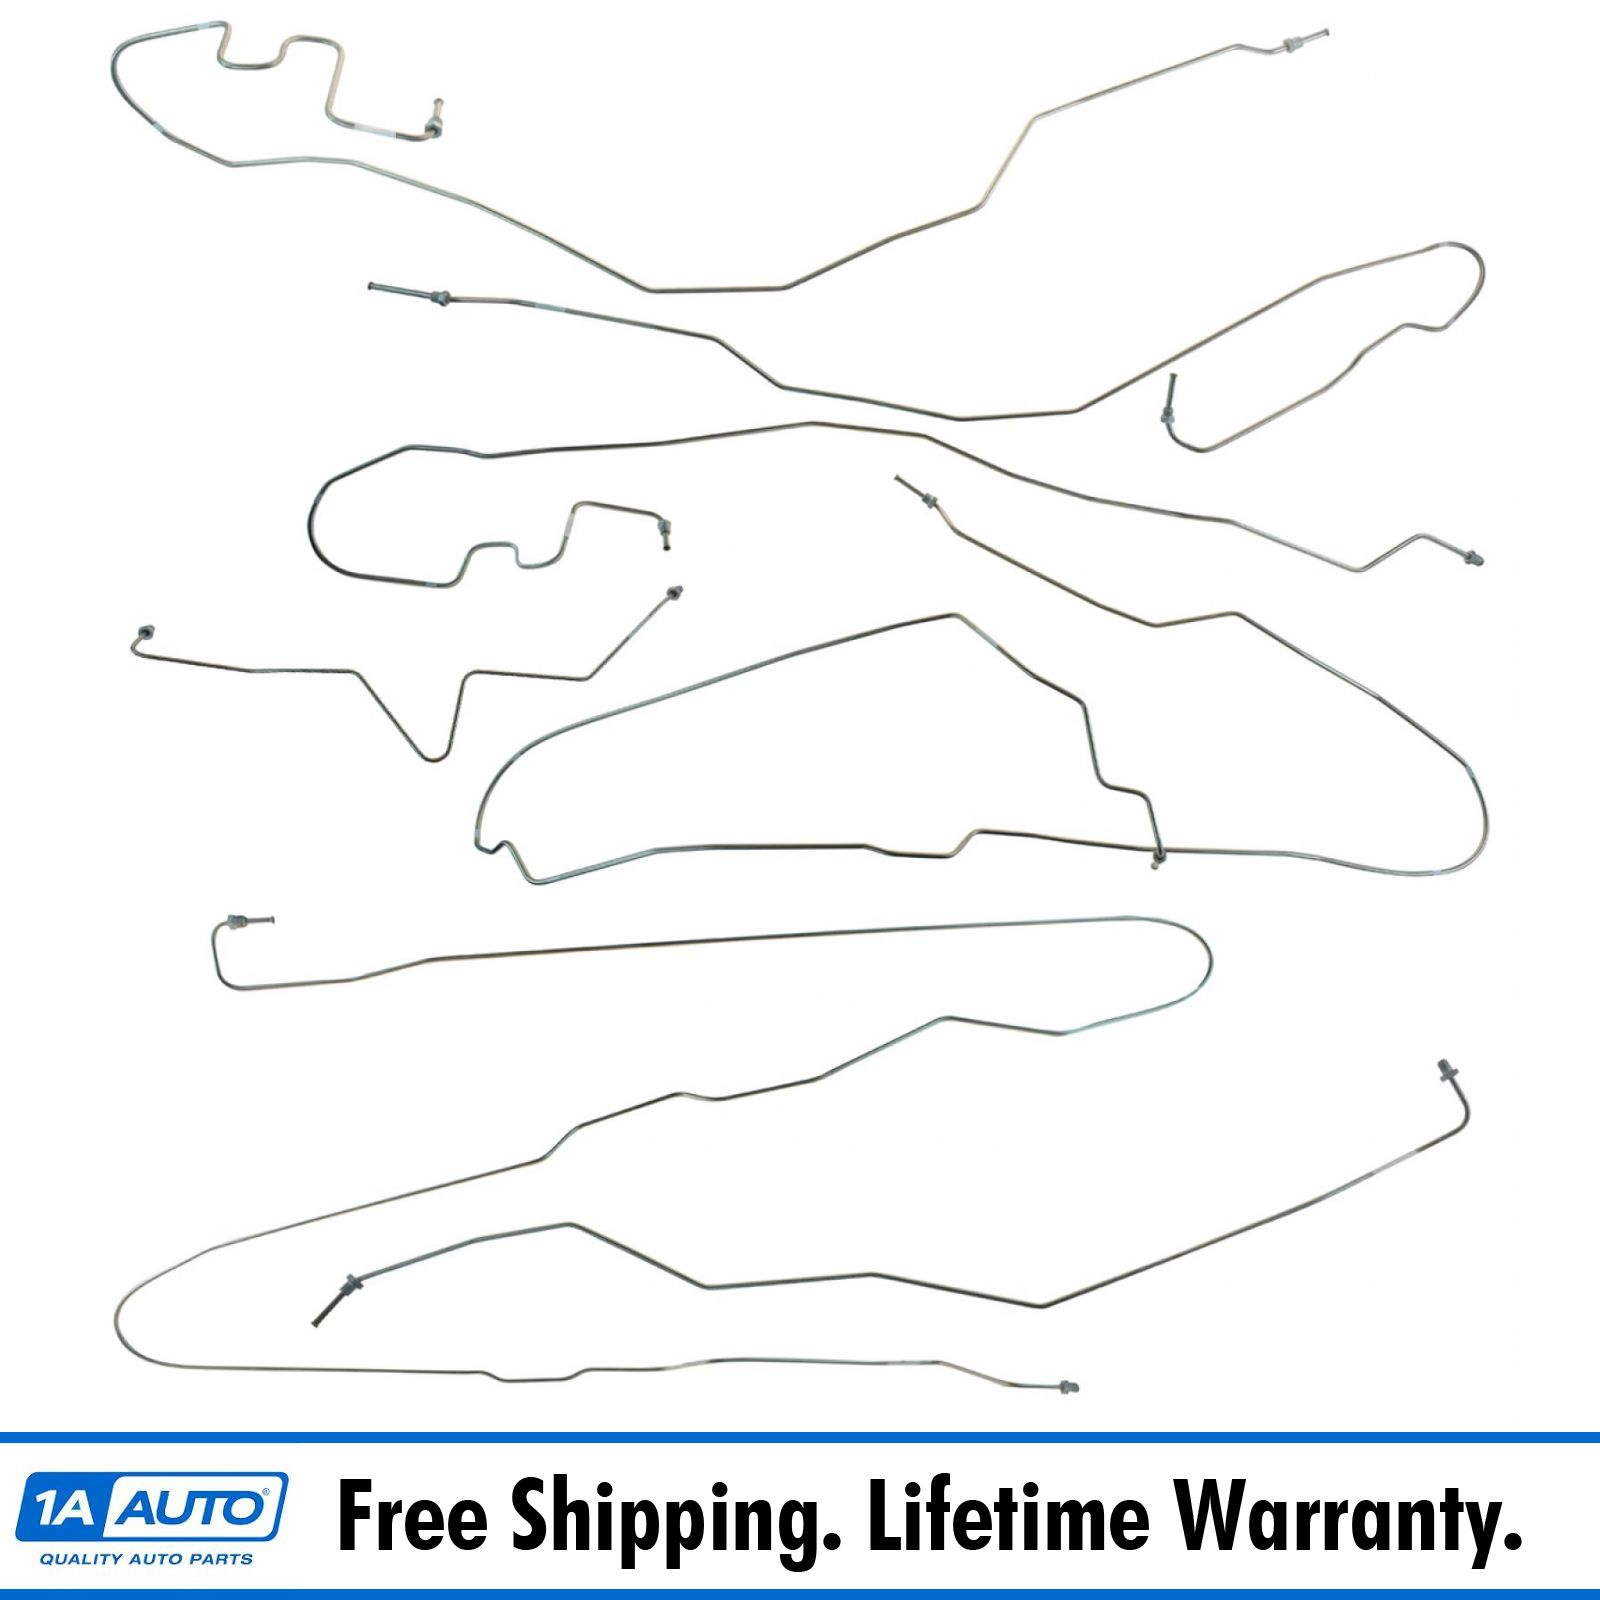 99-02 Silverado//Sierra 2wd Front Brake Line Kit; Stainless Steel